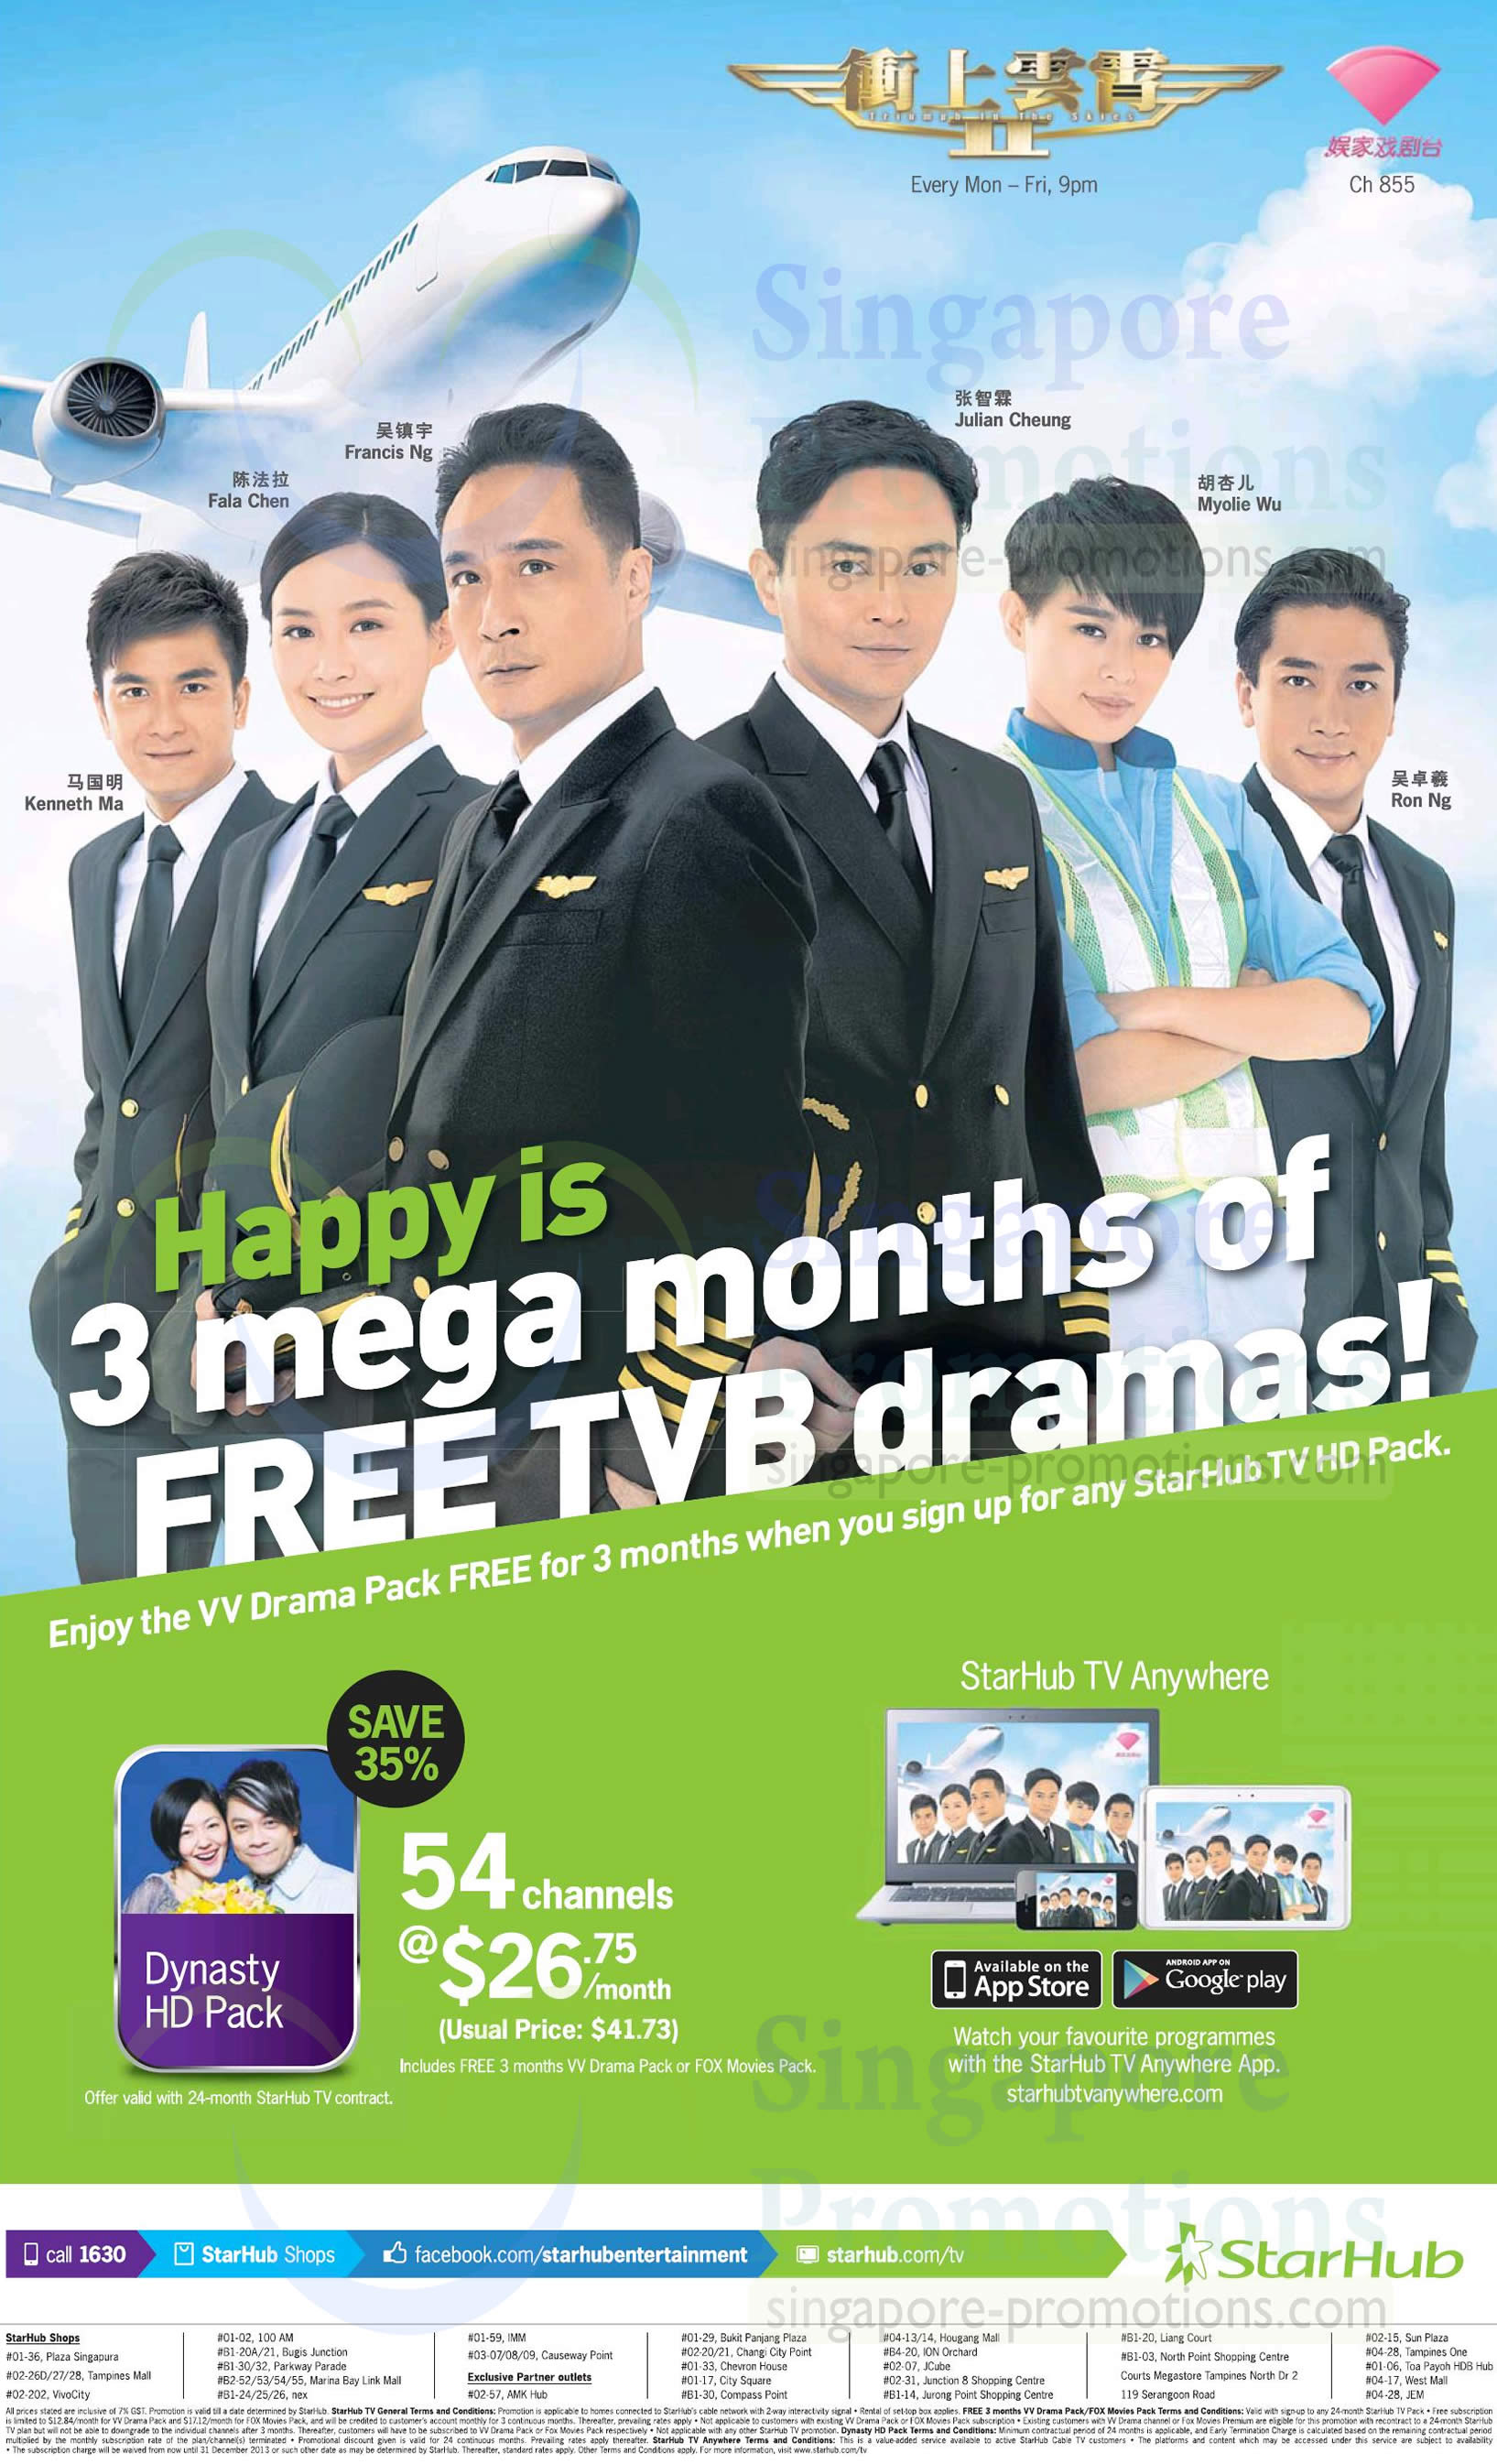 Cable TV Dynasty HD Pack Free 3 Mth VV Drama Pack